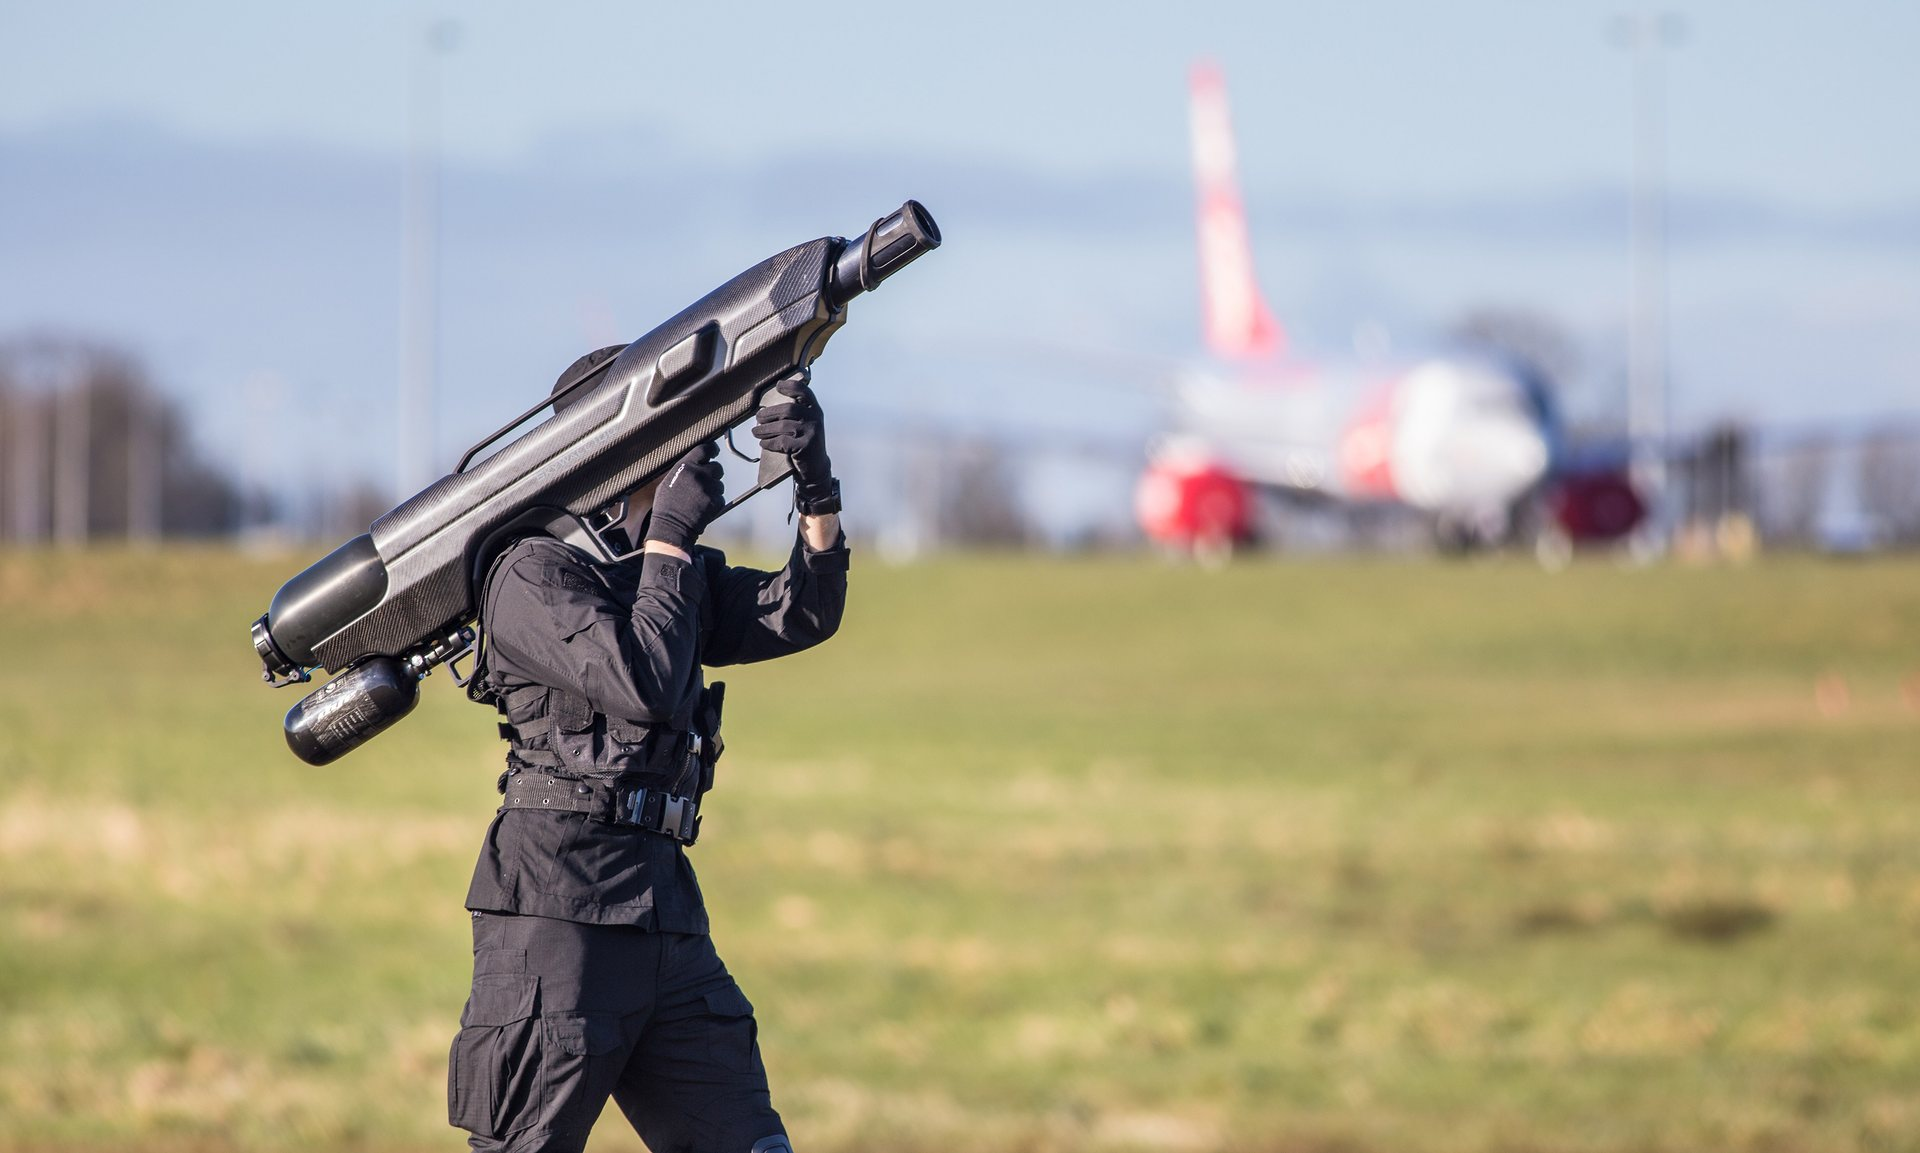 UK startup pitches crazy looking bazooka to take down rogue drones on